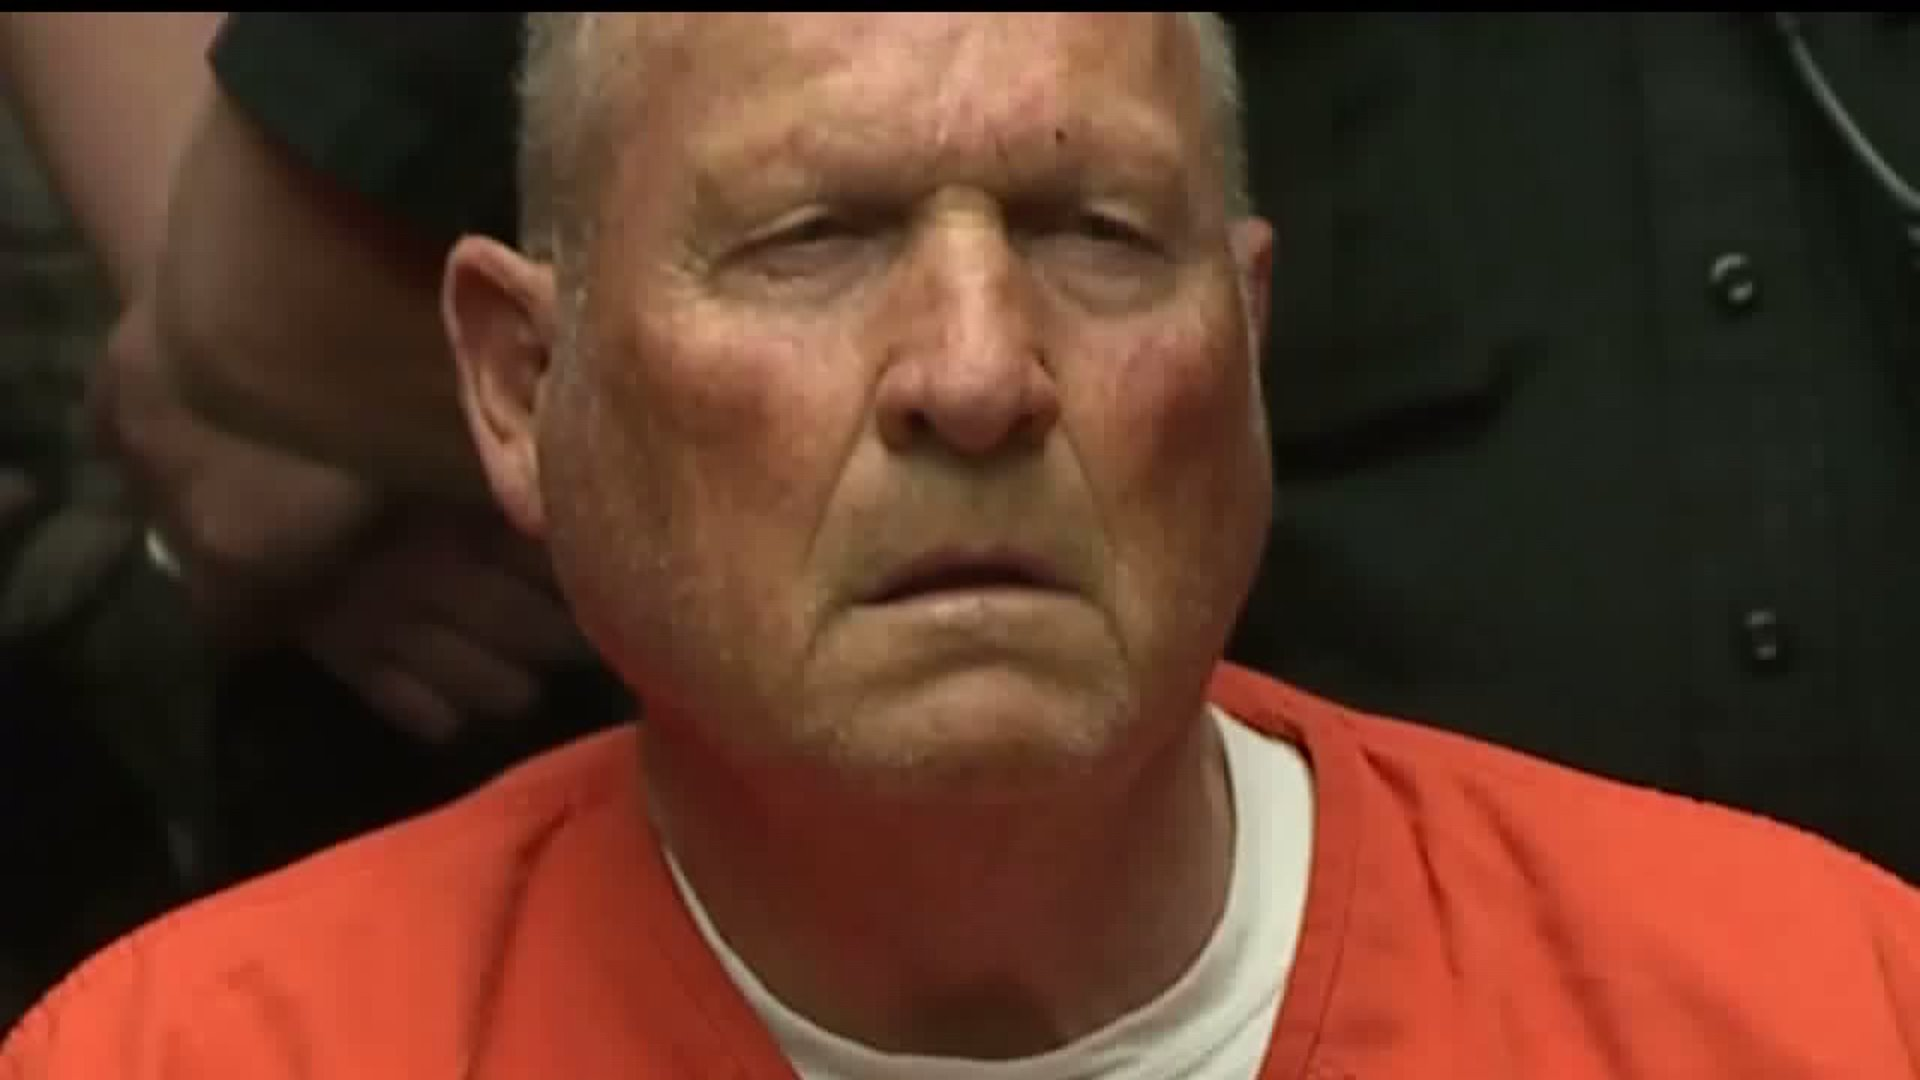 Suspected Golden State Killer's Longtime Co-Worker Speaks Out